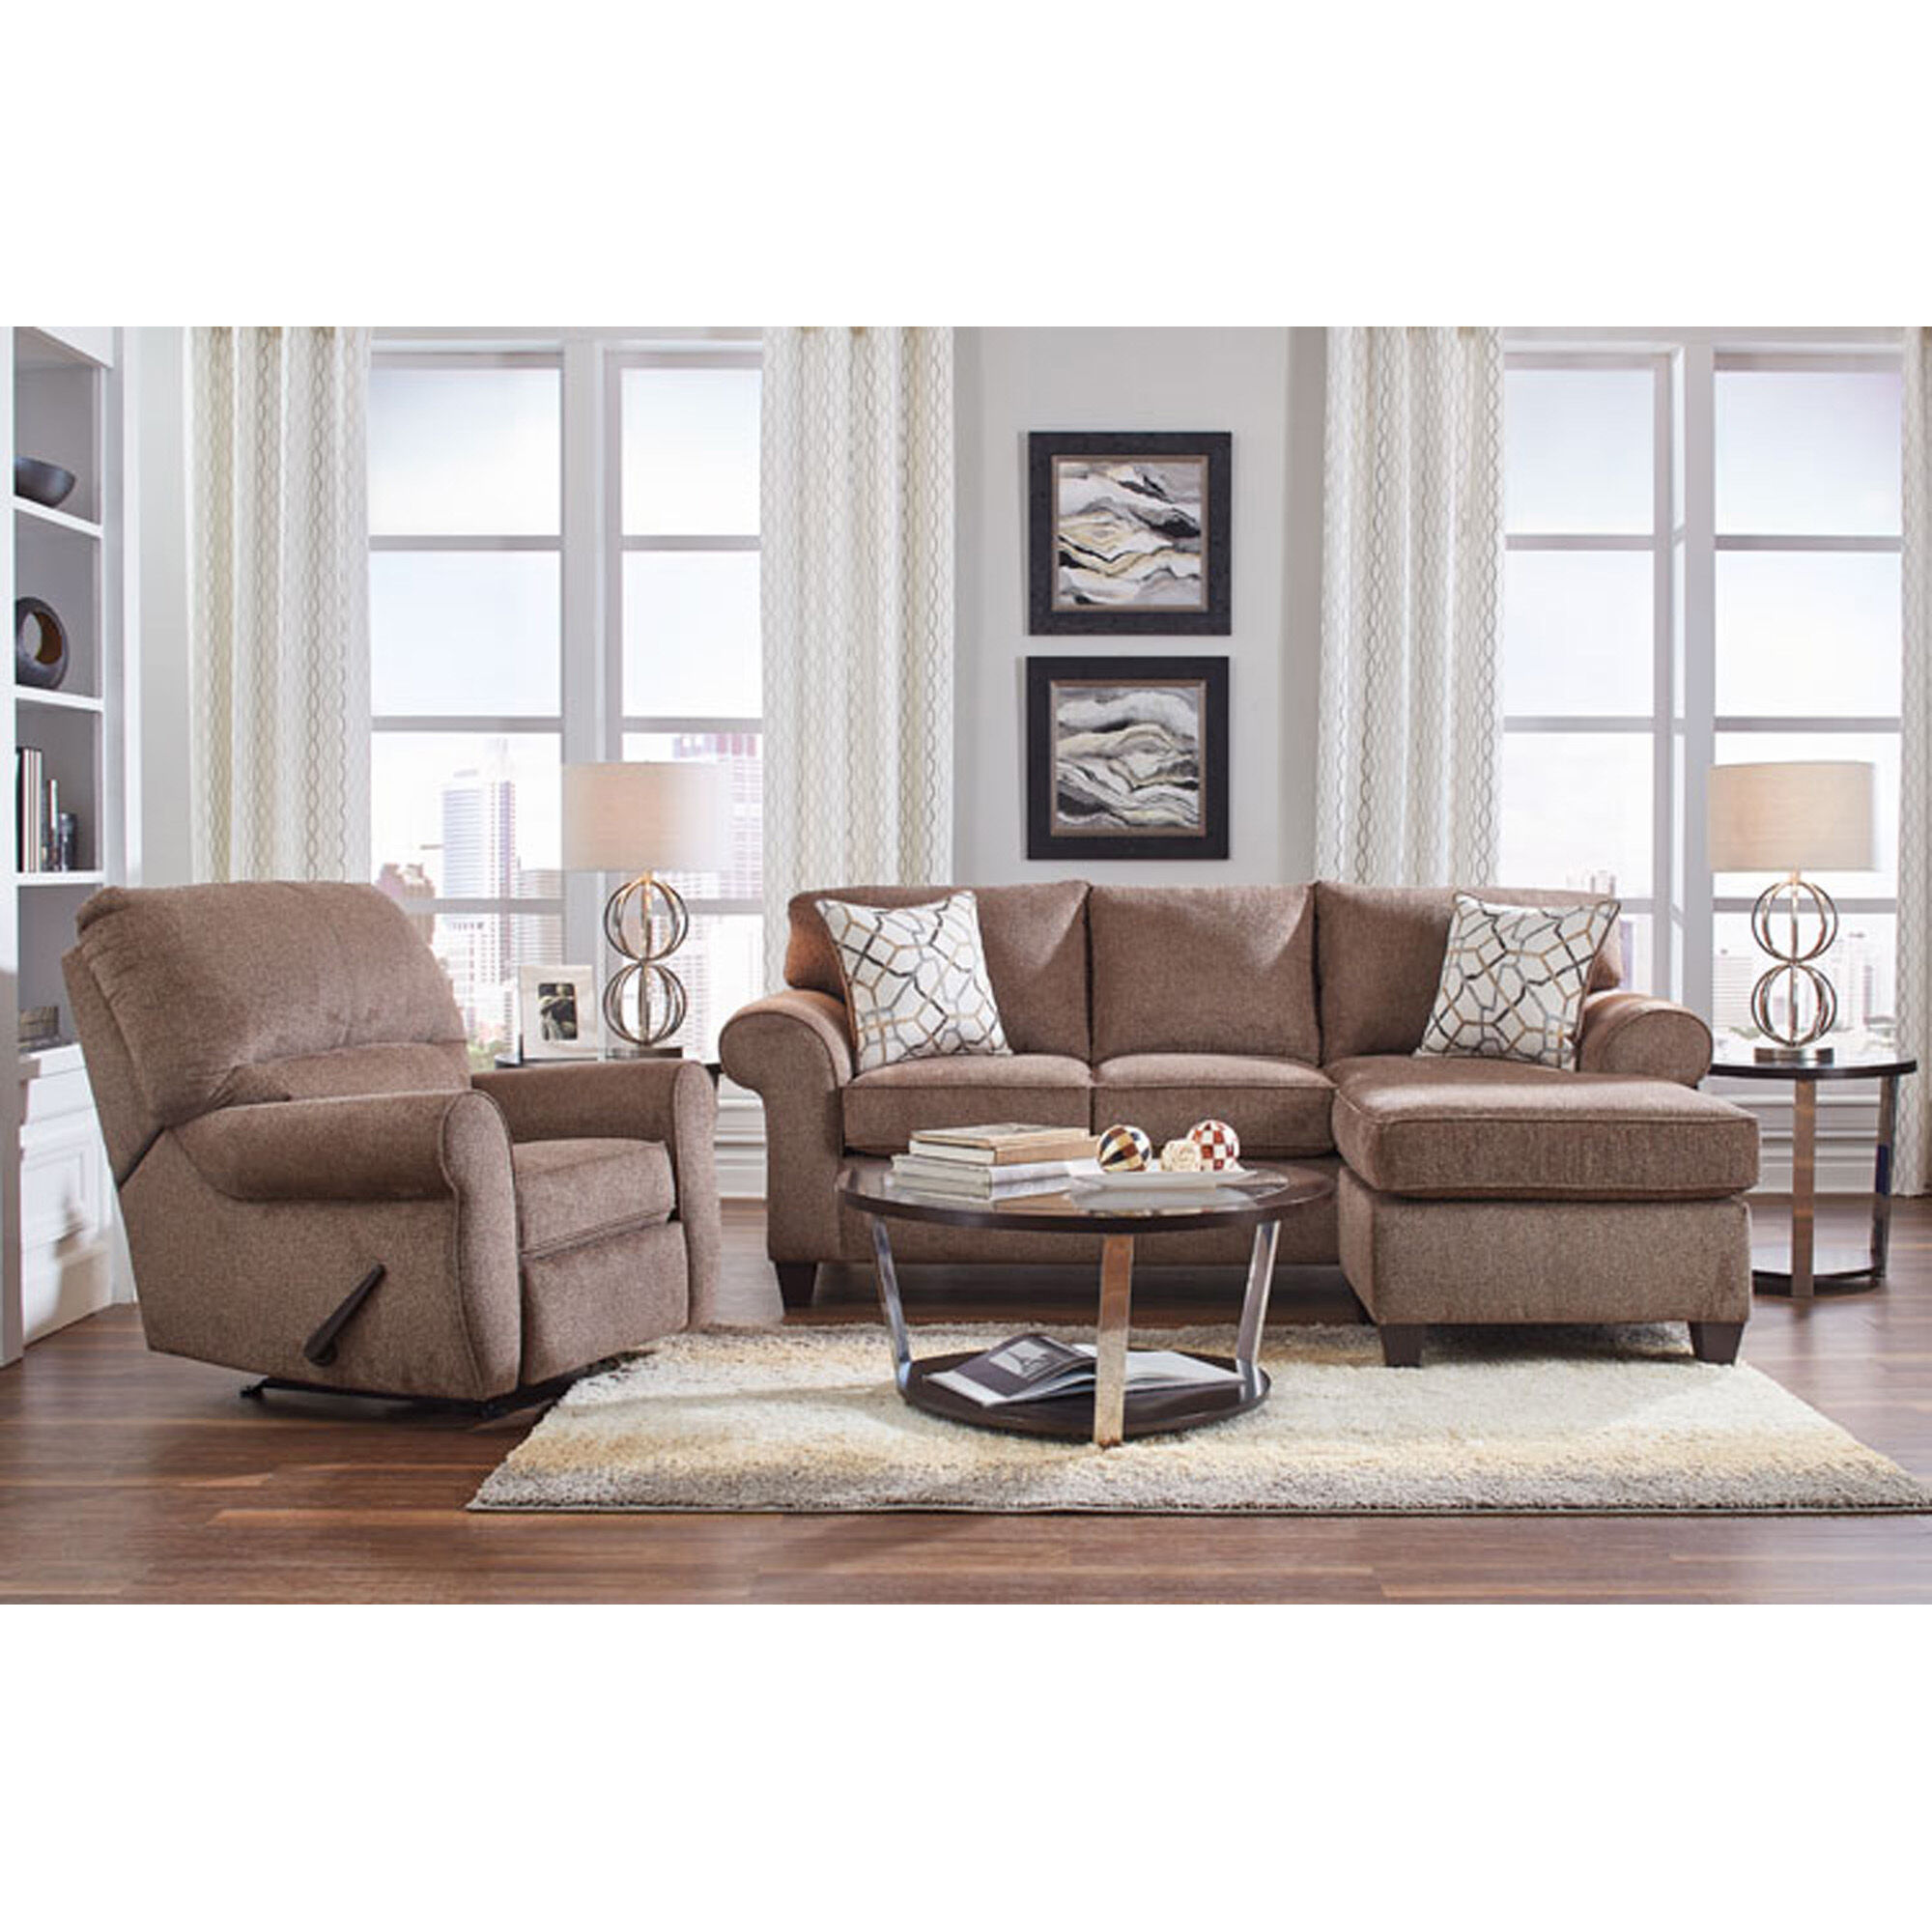 7 Piece Hayley Living Room Collection